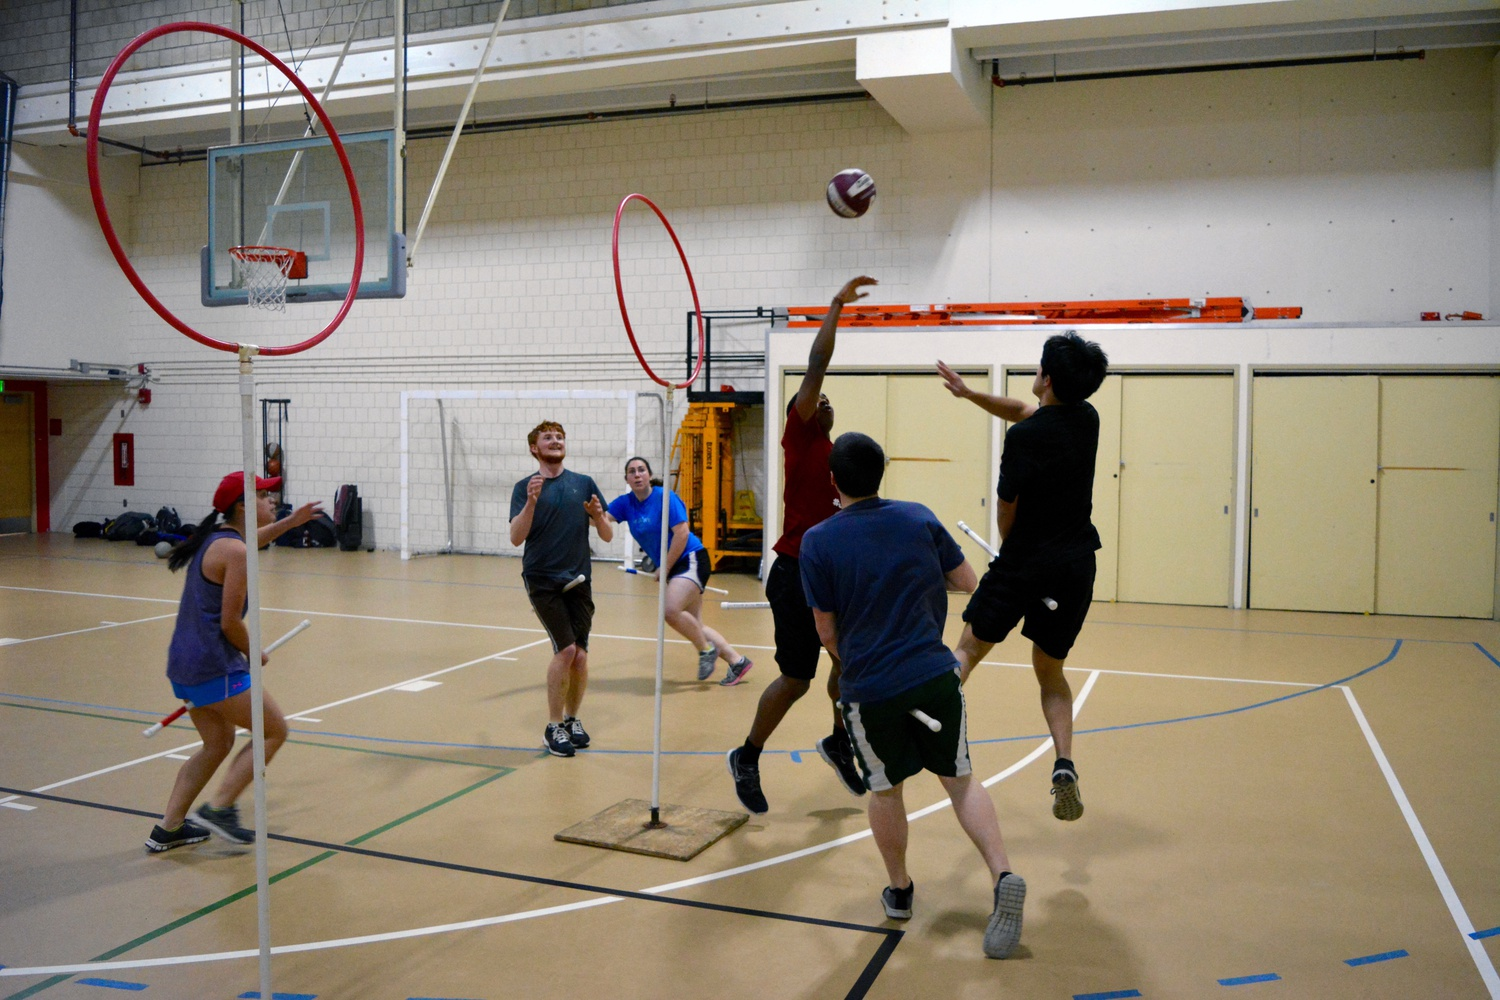 Harvard's quidditch team, The Harvard Horntails, held its first practice of the semester, which was open to all students, at the Harvard Quad Recreational Athletic Center on Wednesday.